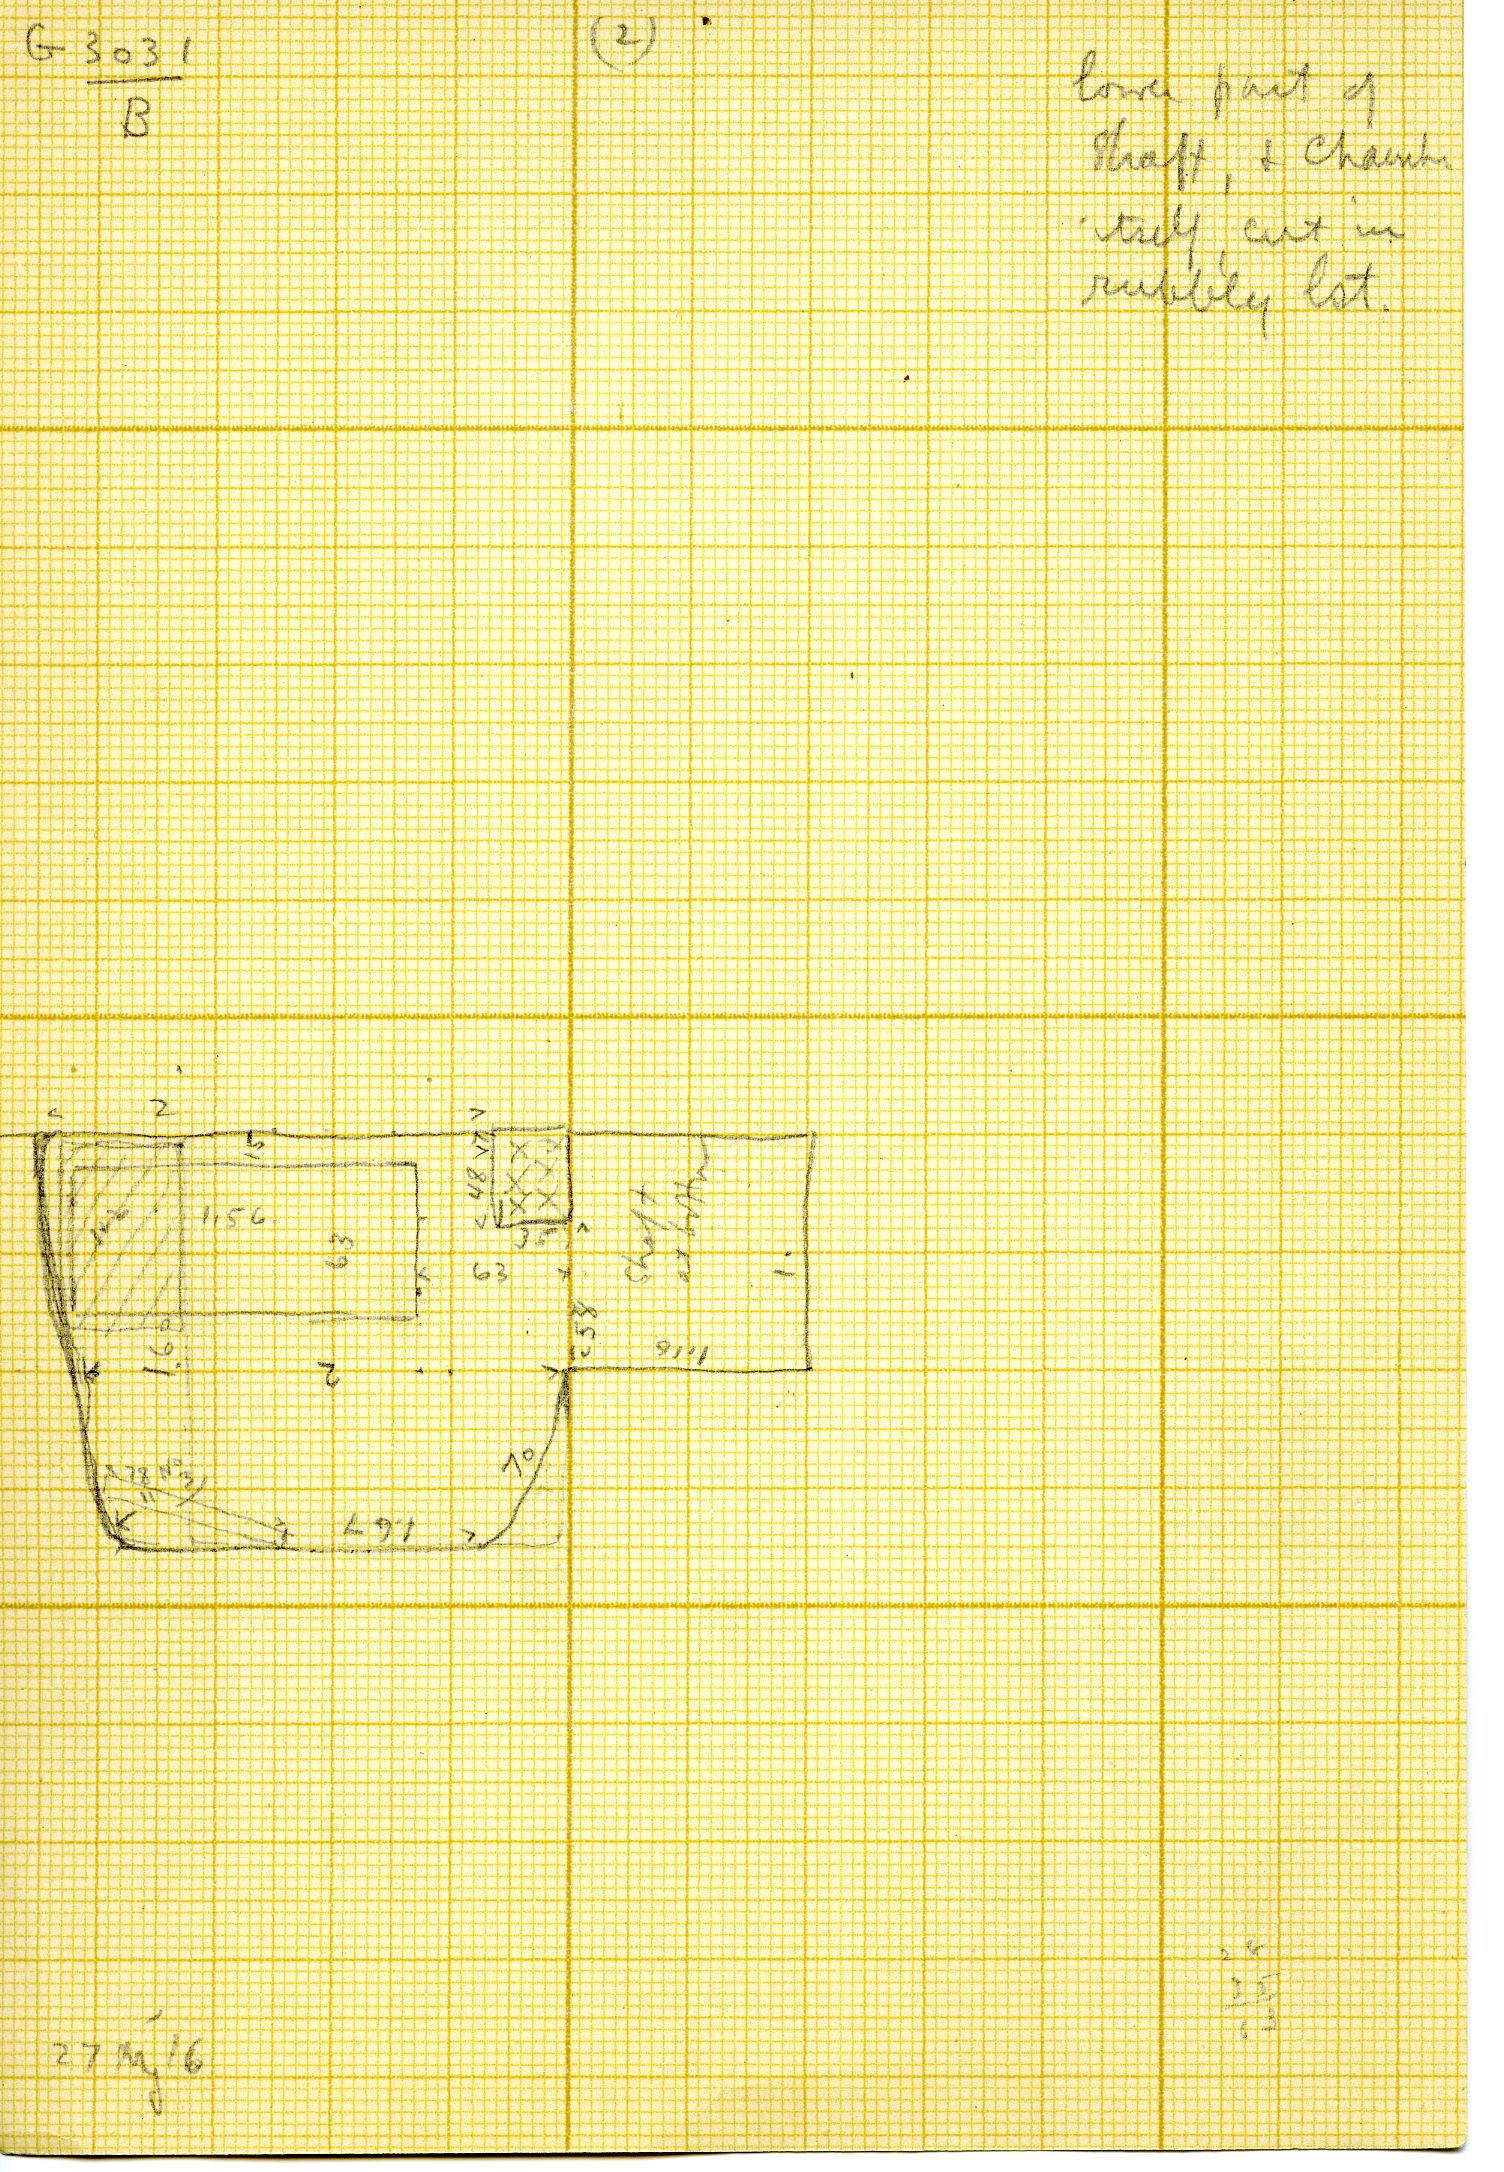 Maps and plans: G 3031, Shaft B